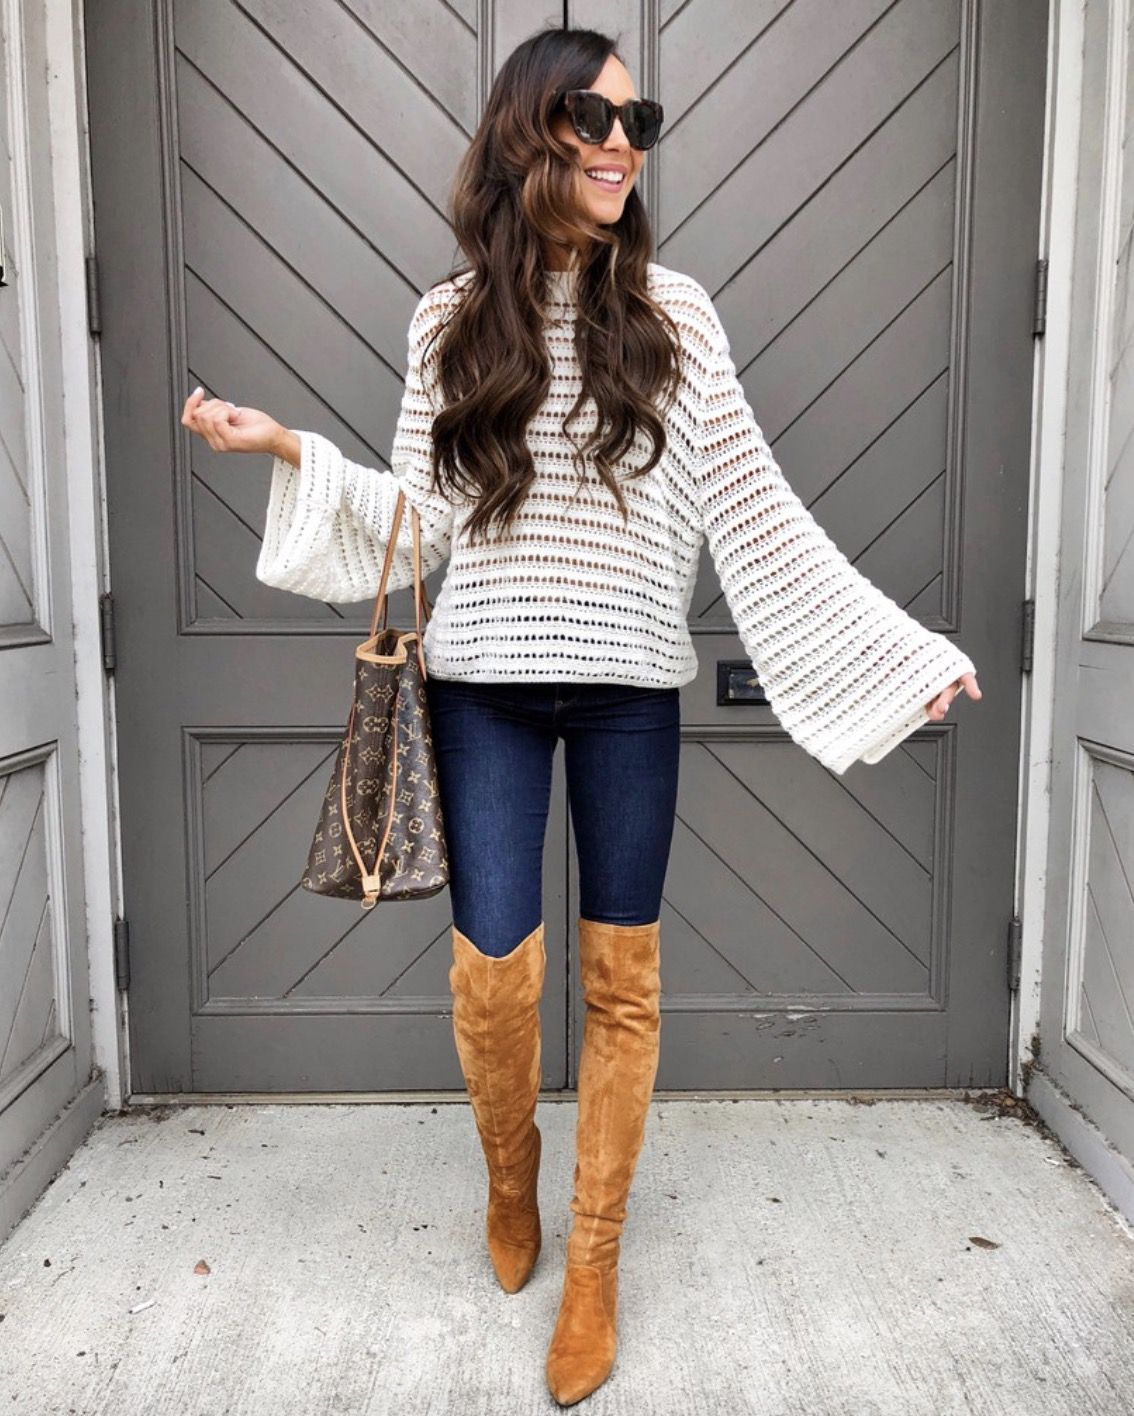 1378fbc2e72 17+ Over The Knee Boot Outfit Looks To Get Inspired By  Styling tan over  the knee boots can be tricky if you don t know what to do with them. Copy  these ...